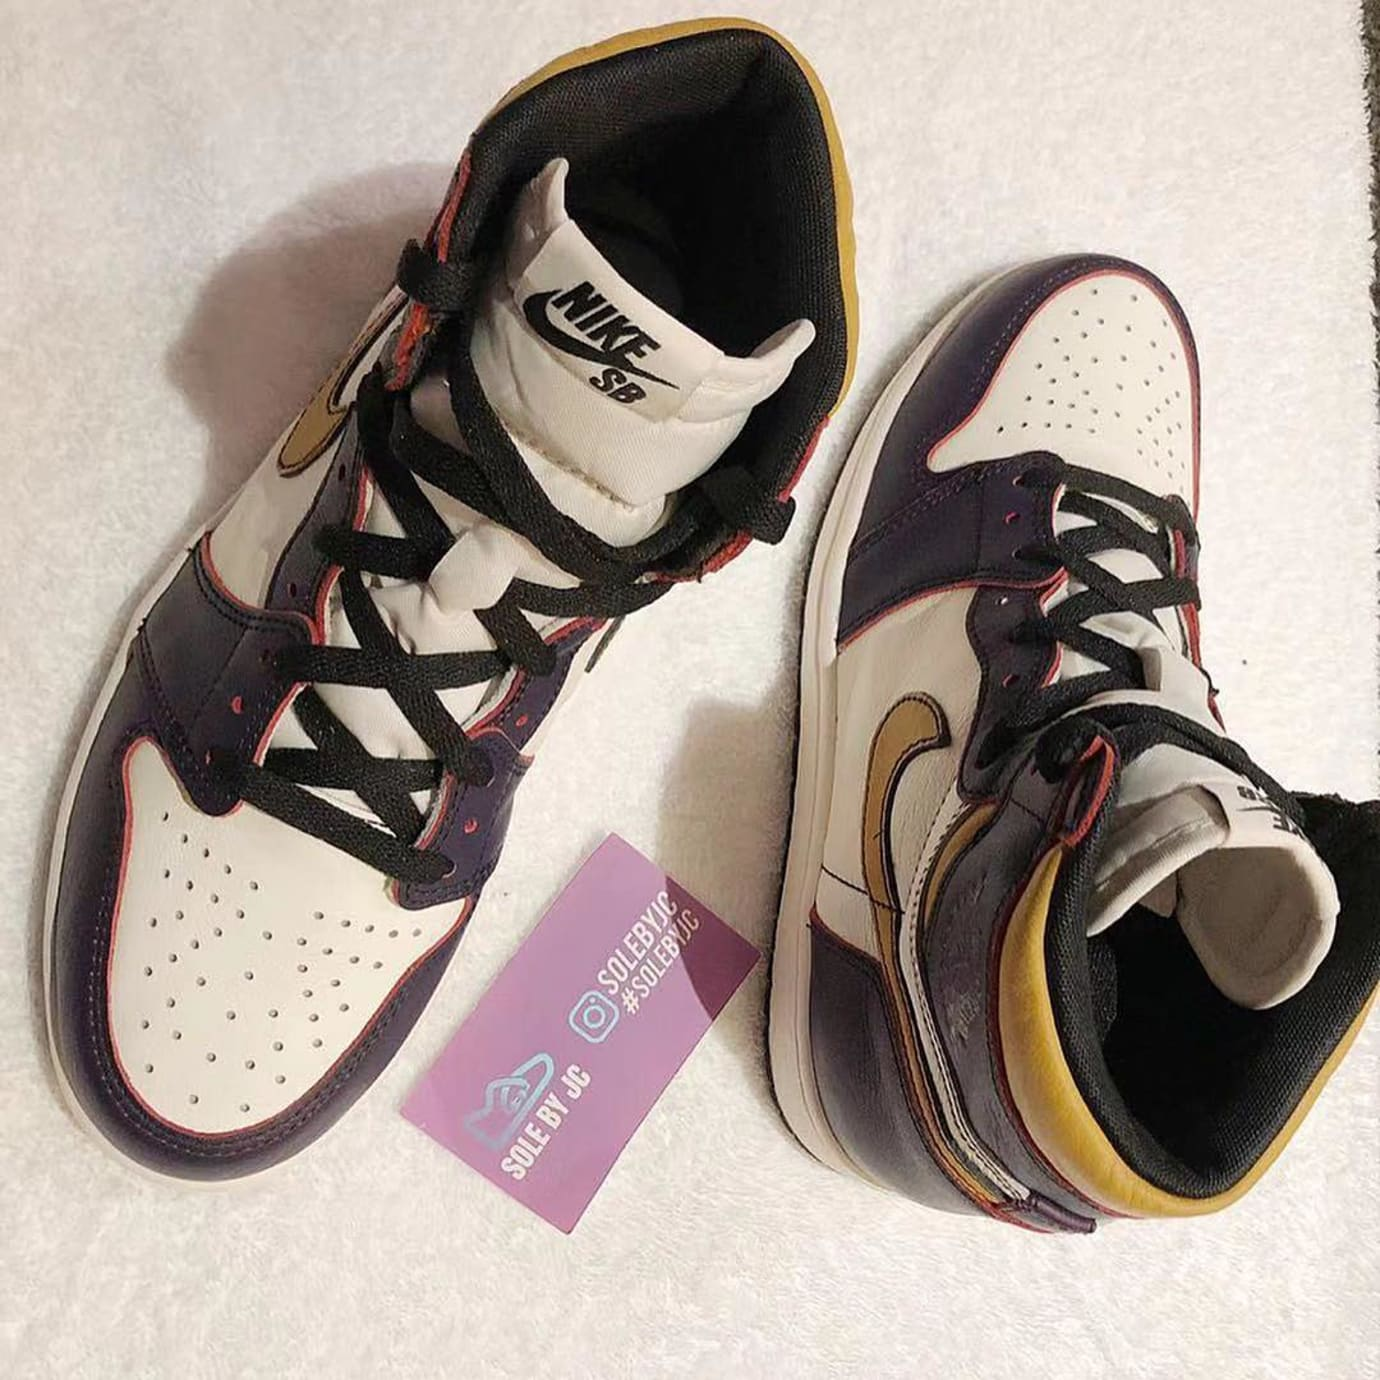 separation shoes 8bd01 c8e14 Image via solebyjc · Nike SB x Air Jordan 1 Lakers CD6578-507 1